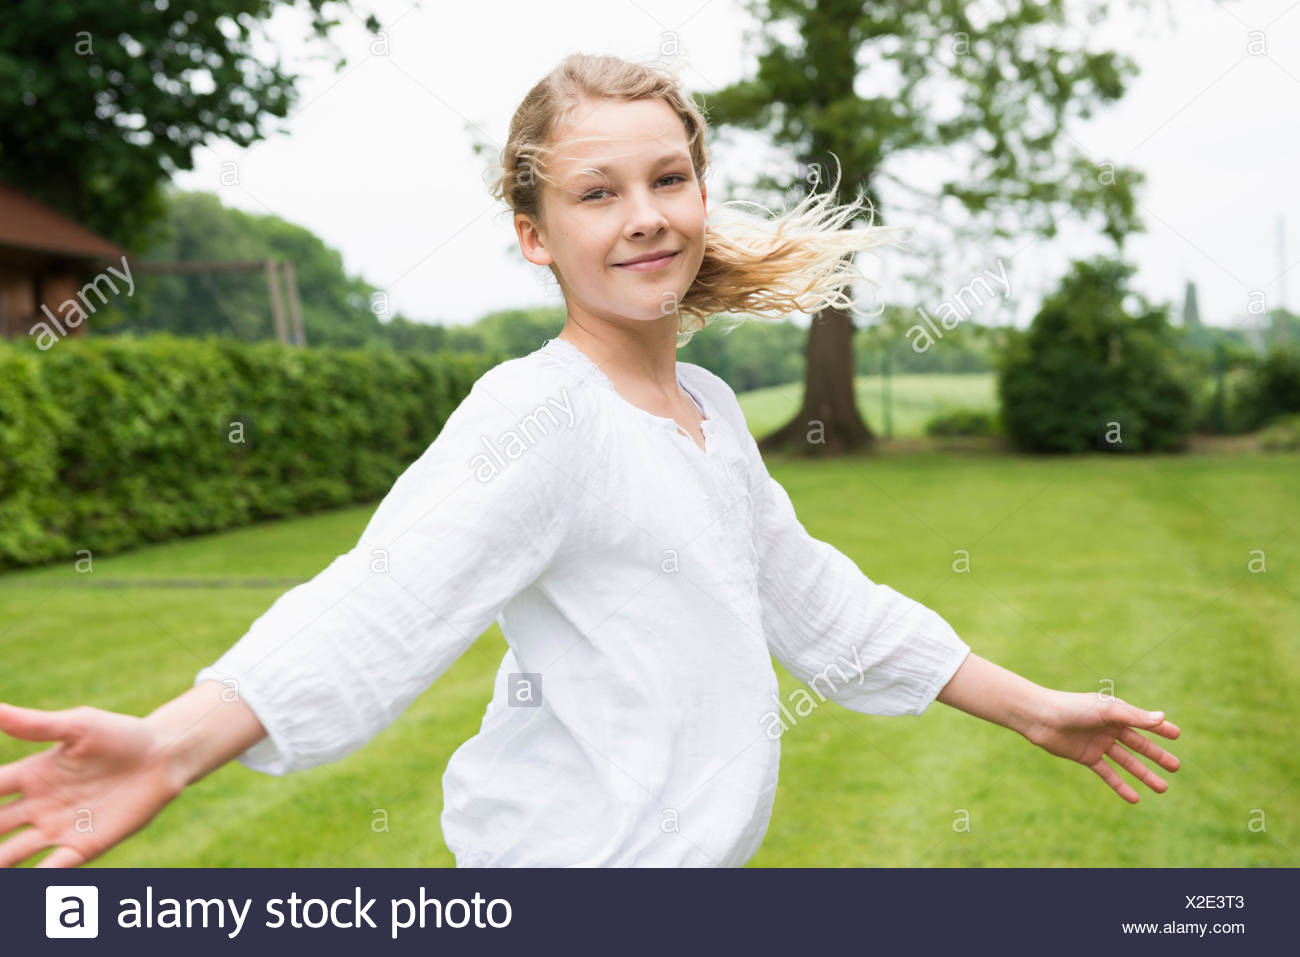 Girl wearing white top with arms out - Stock Image